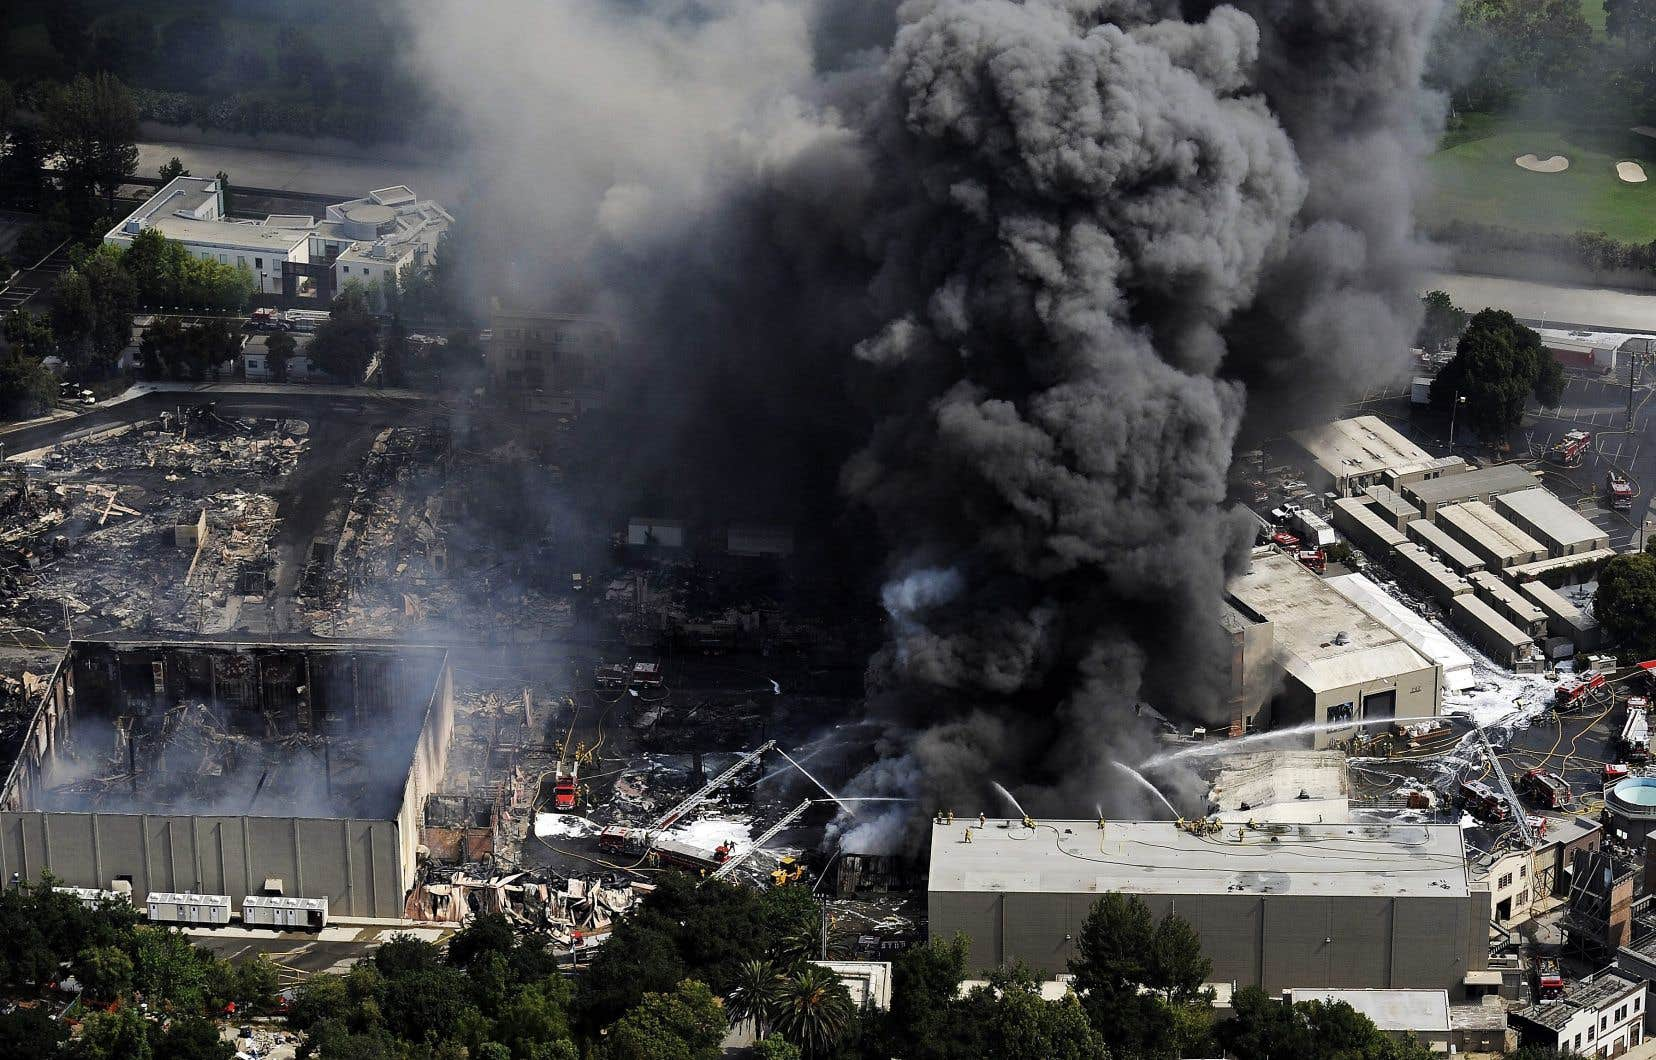 La catastrophe de 2008 à Hollywood aurait détruit environ 100 000 enregistrements.